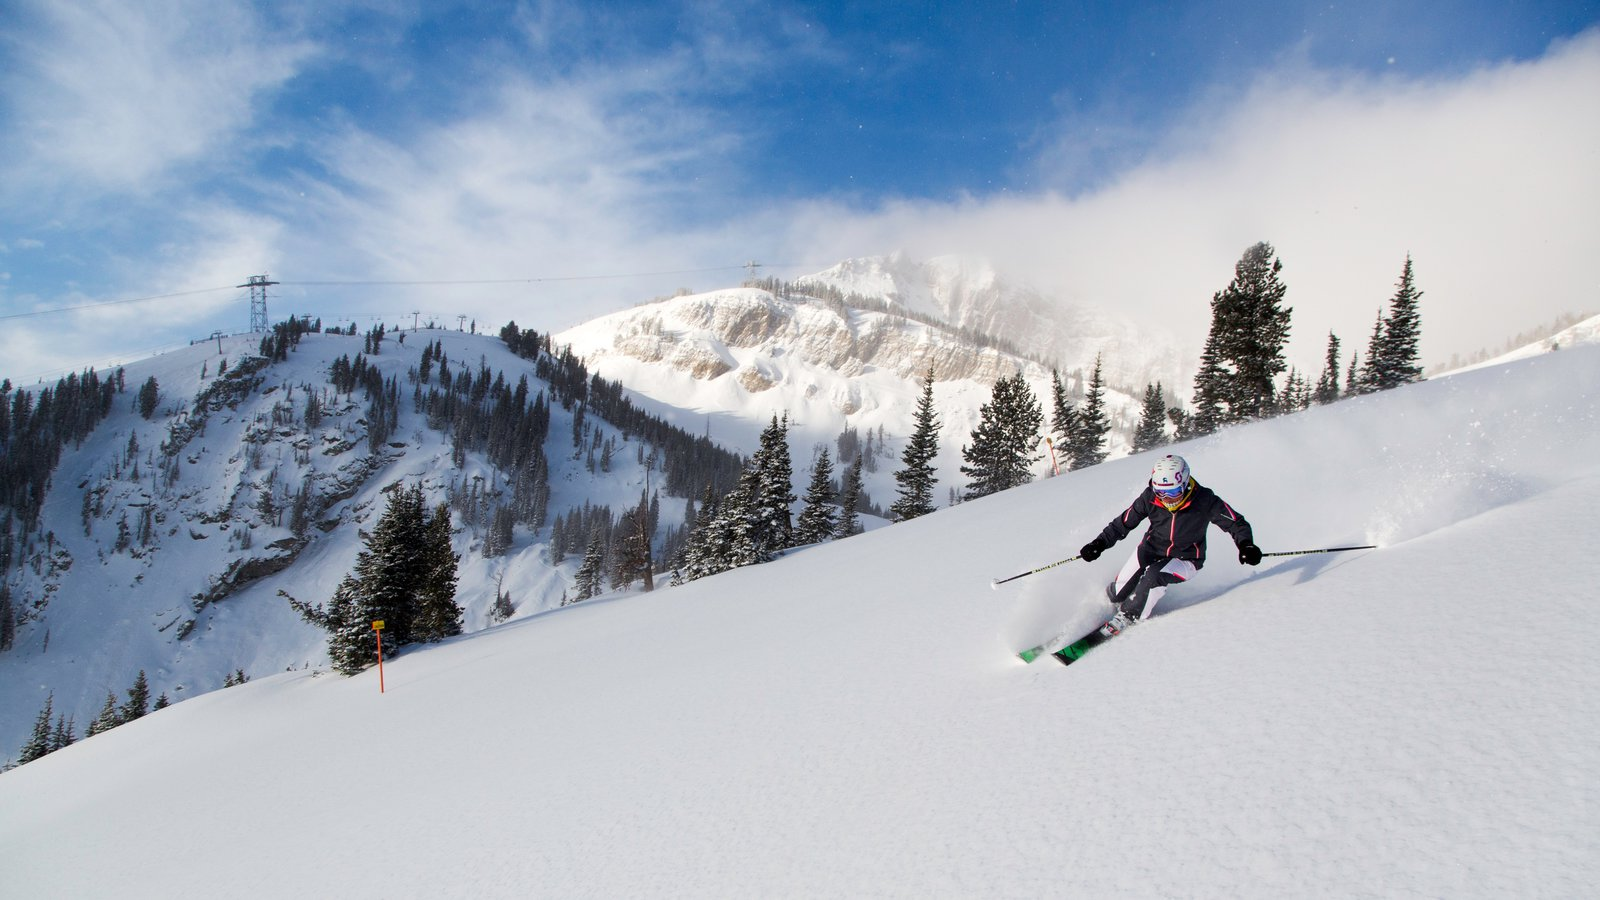 jackson hole mountain resort pictures: view photos & images of